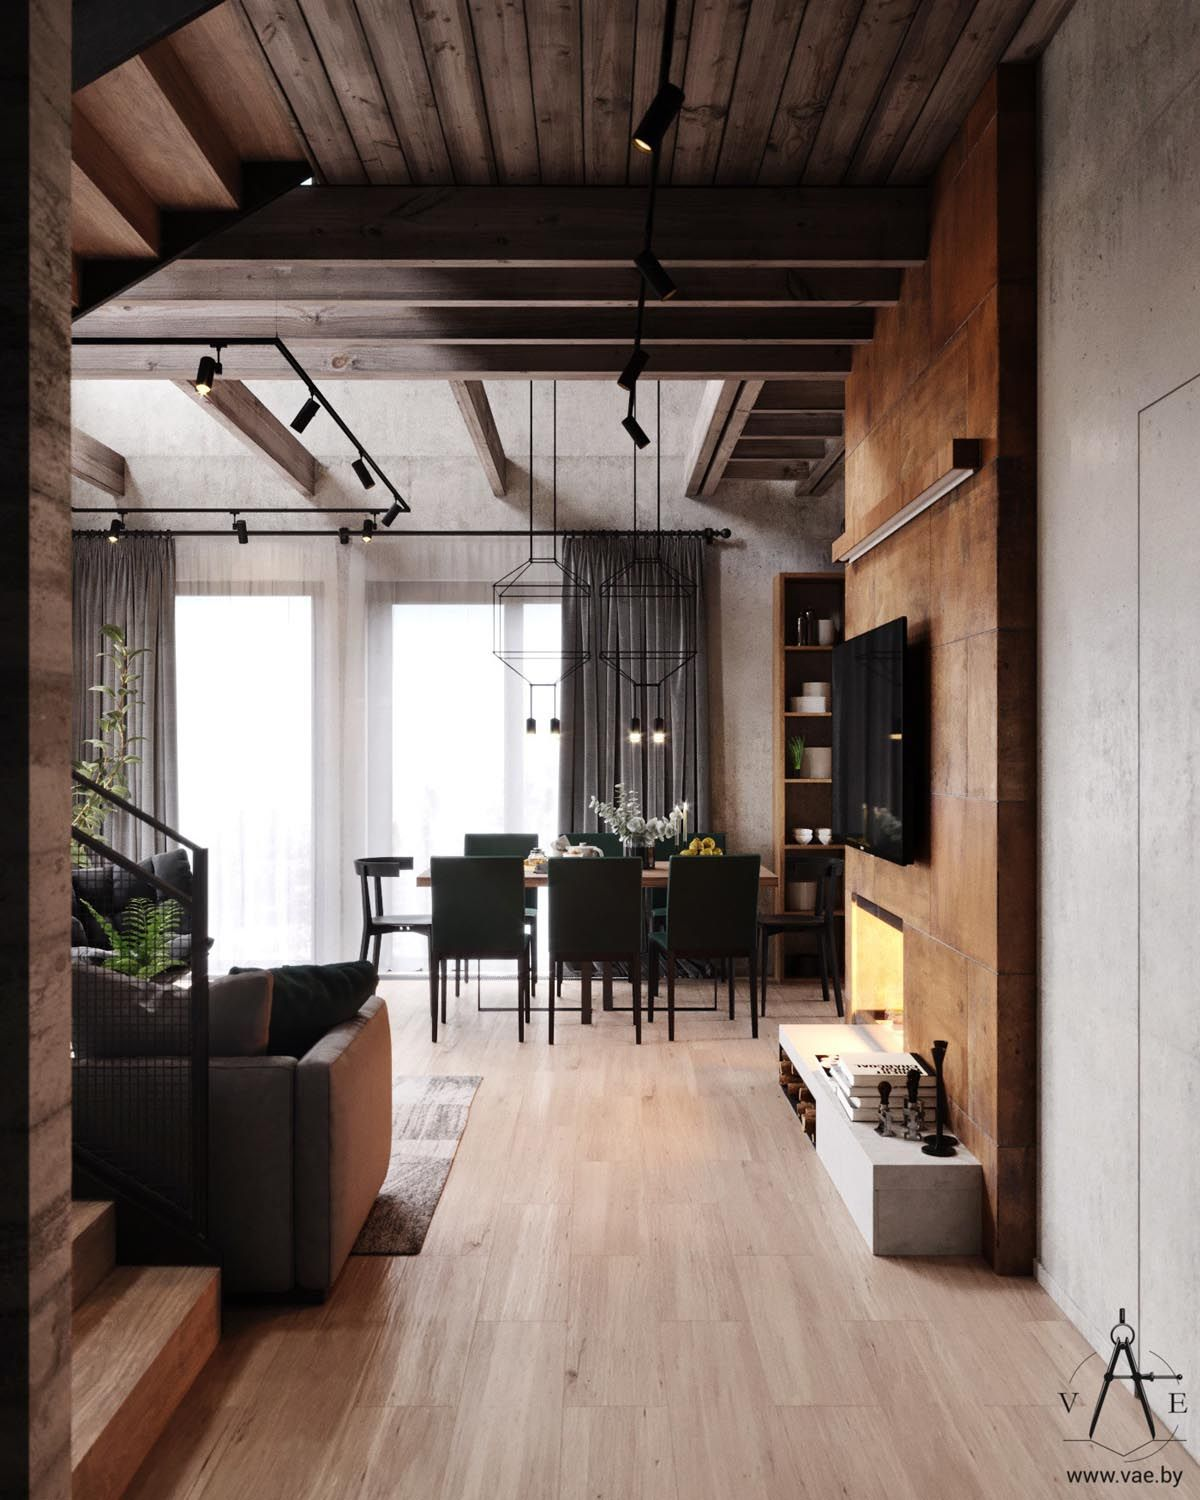 This City House In Minsk, Belarus, Is Of Modern Loft Style. Designed By  VAE, The Interior Is Decked Out With Metal And Concrete Industrial Features,  Softe Ideas